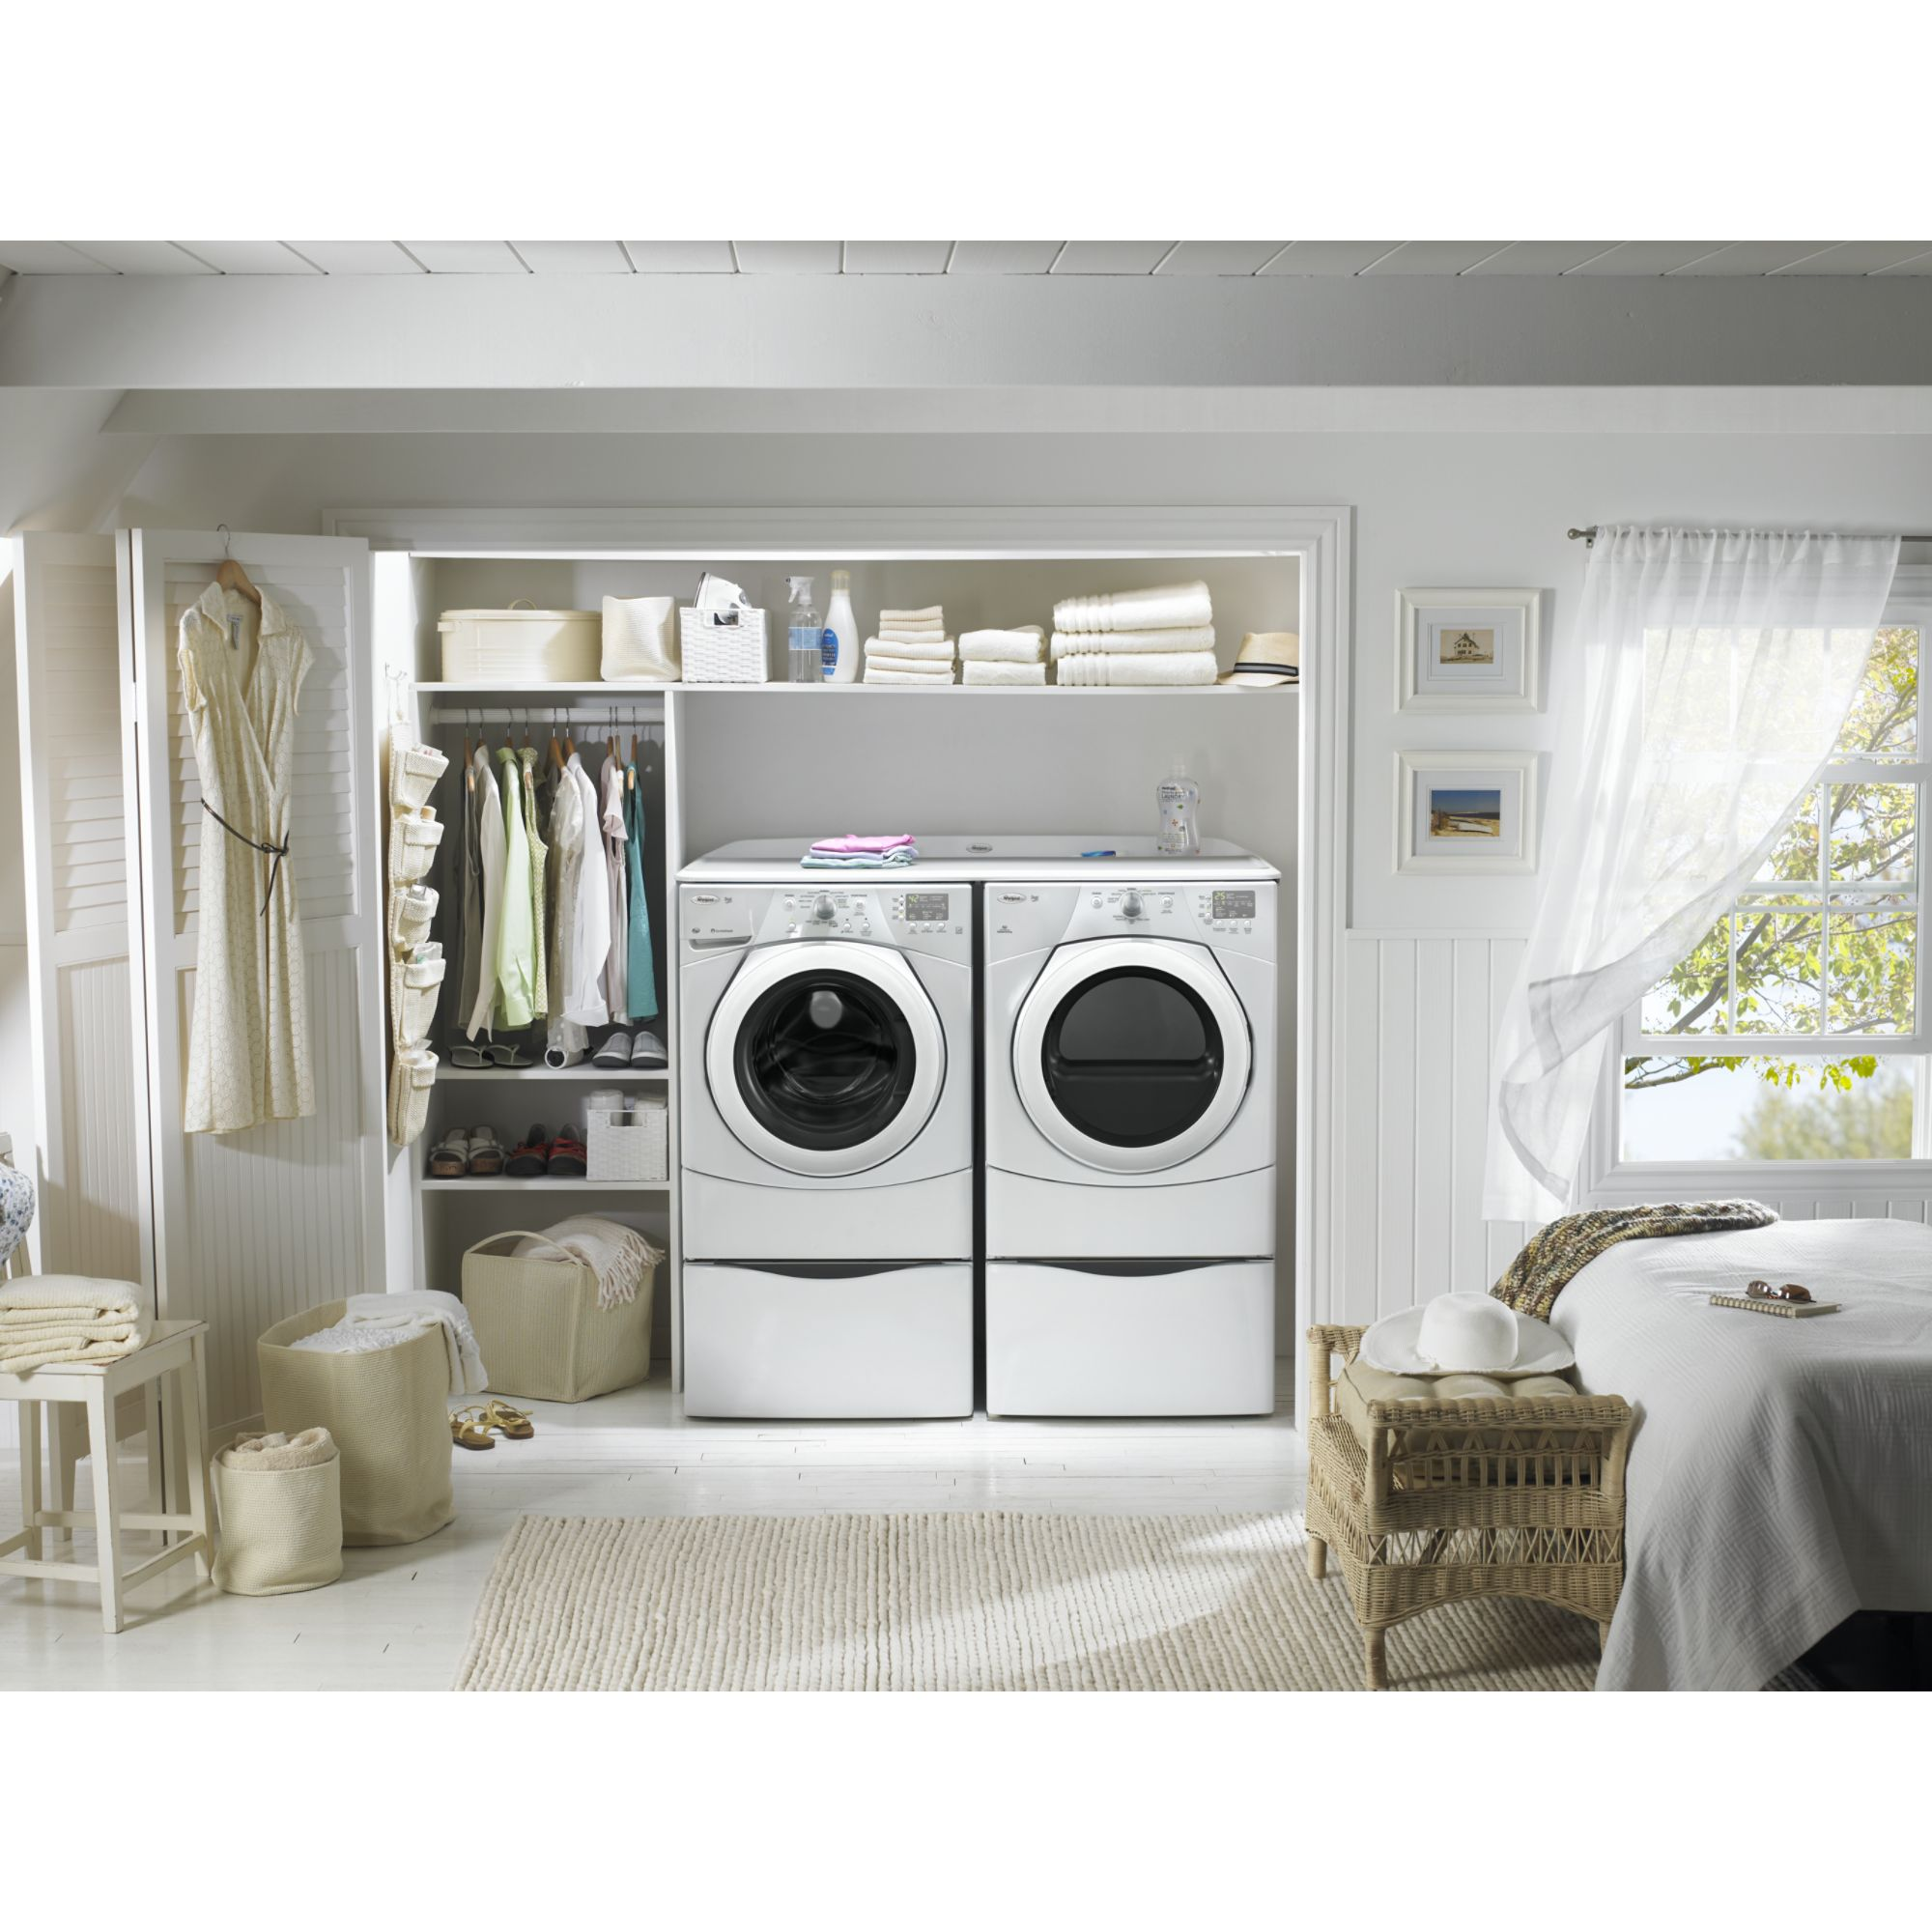 Whirlpool Front-load Washing Machine 3.5 cubic feet